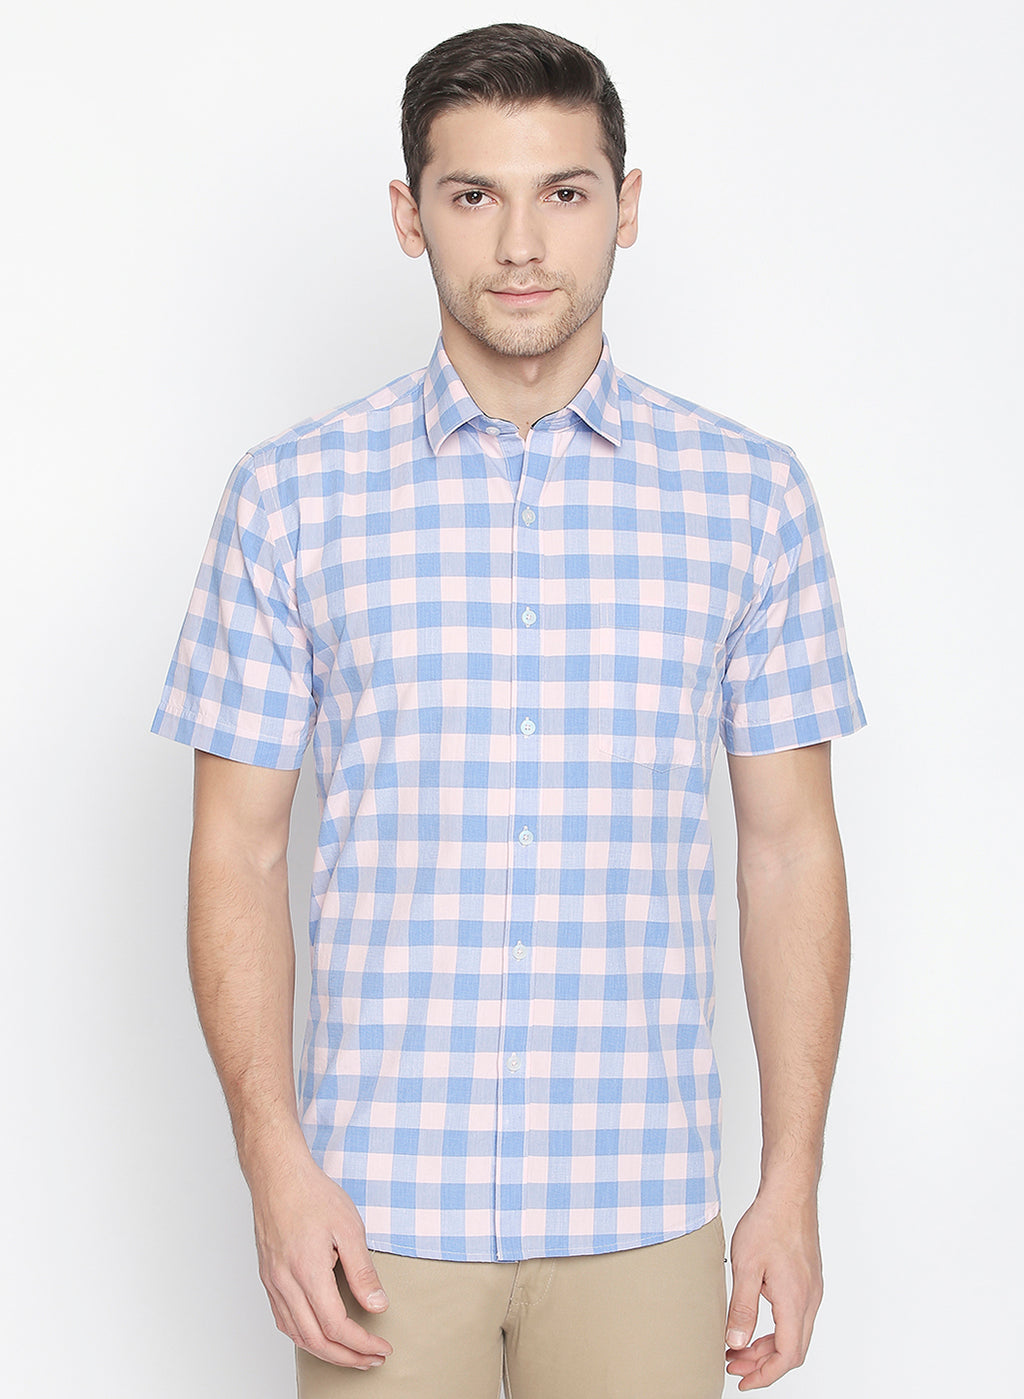 ZIDO Slim fit COTTON Checkered Shirt for Men's BTCH1422